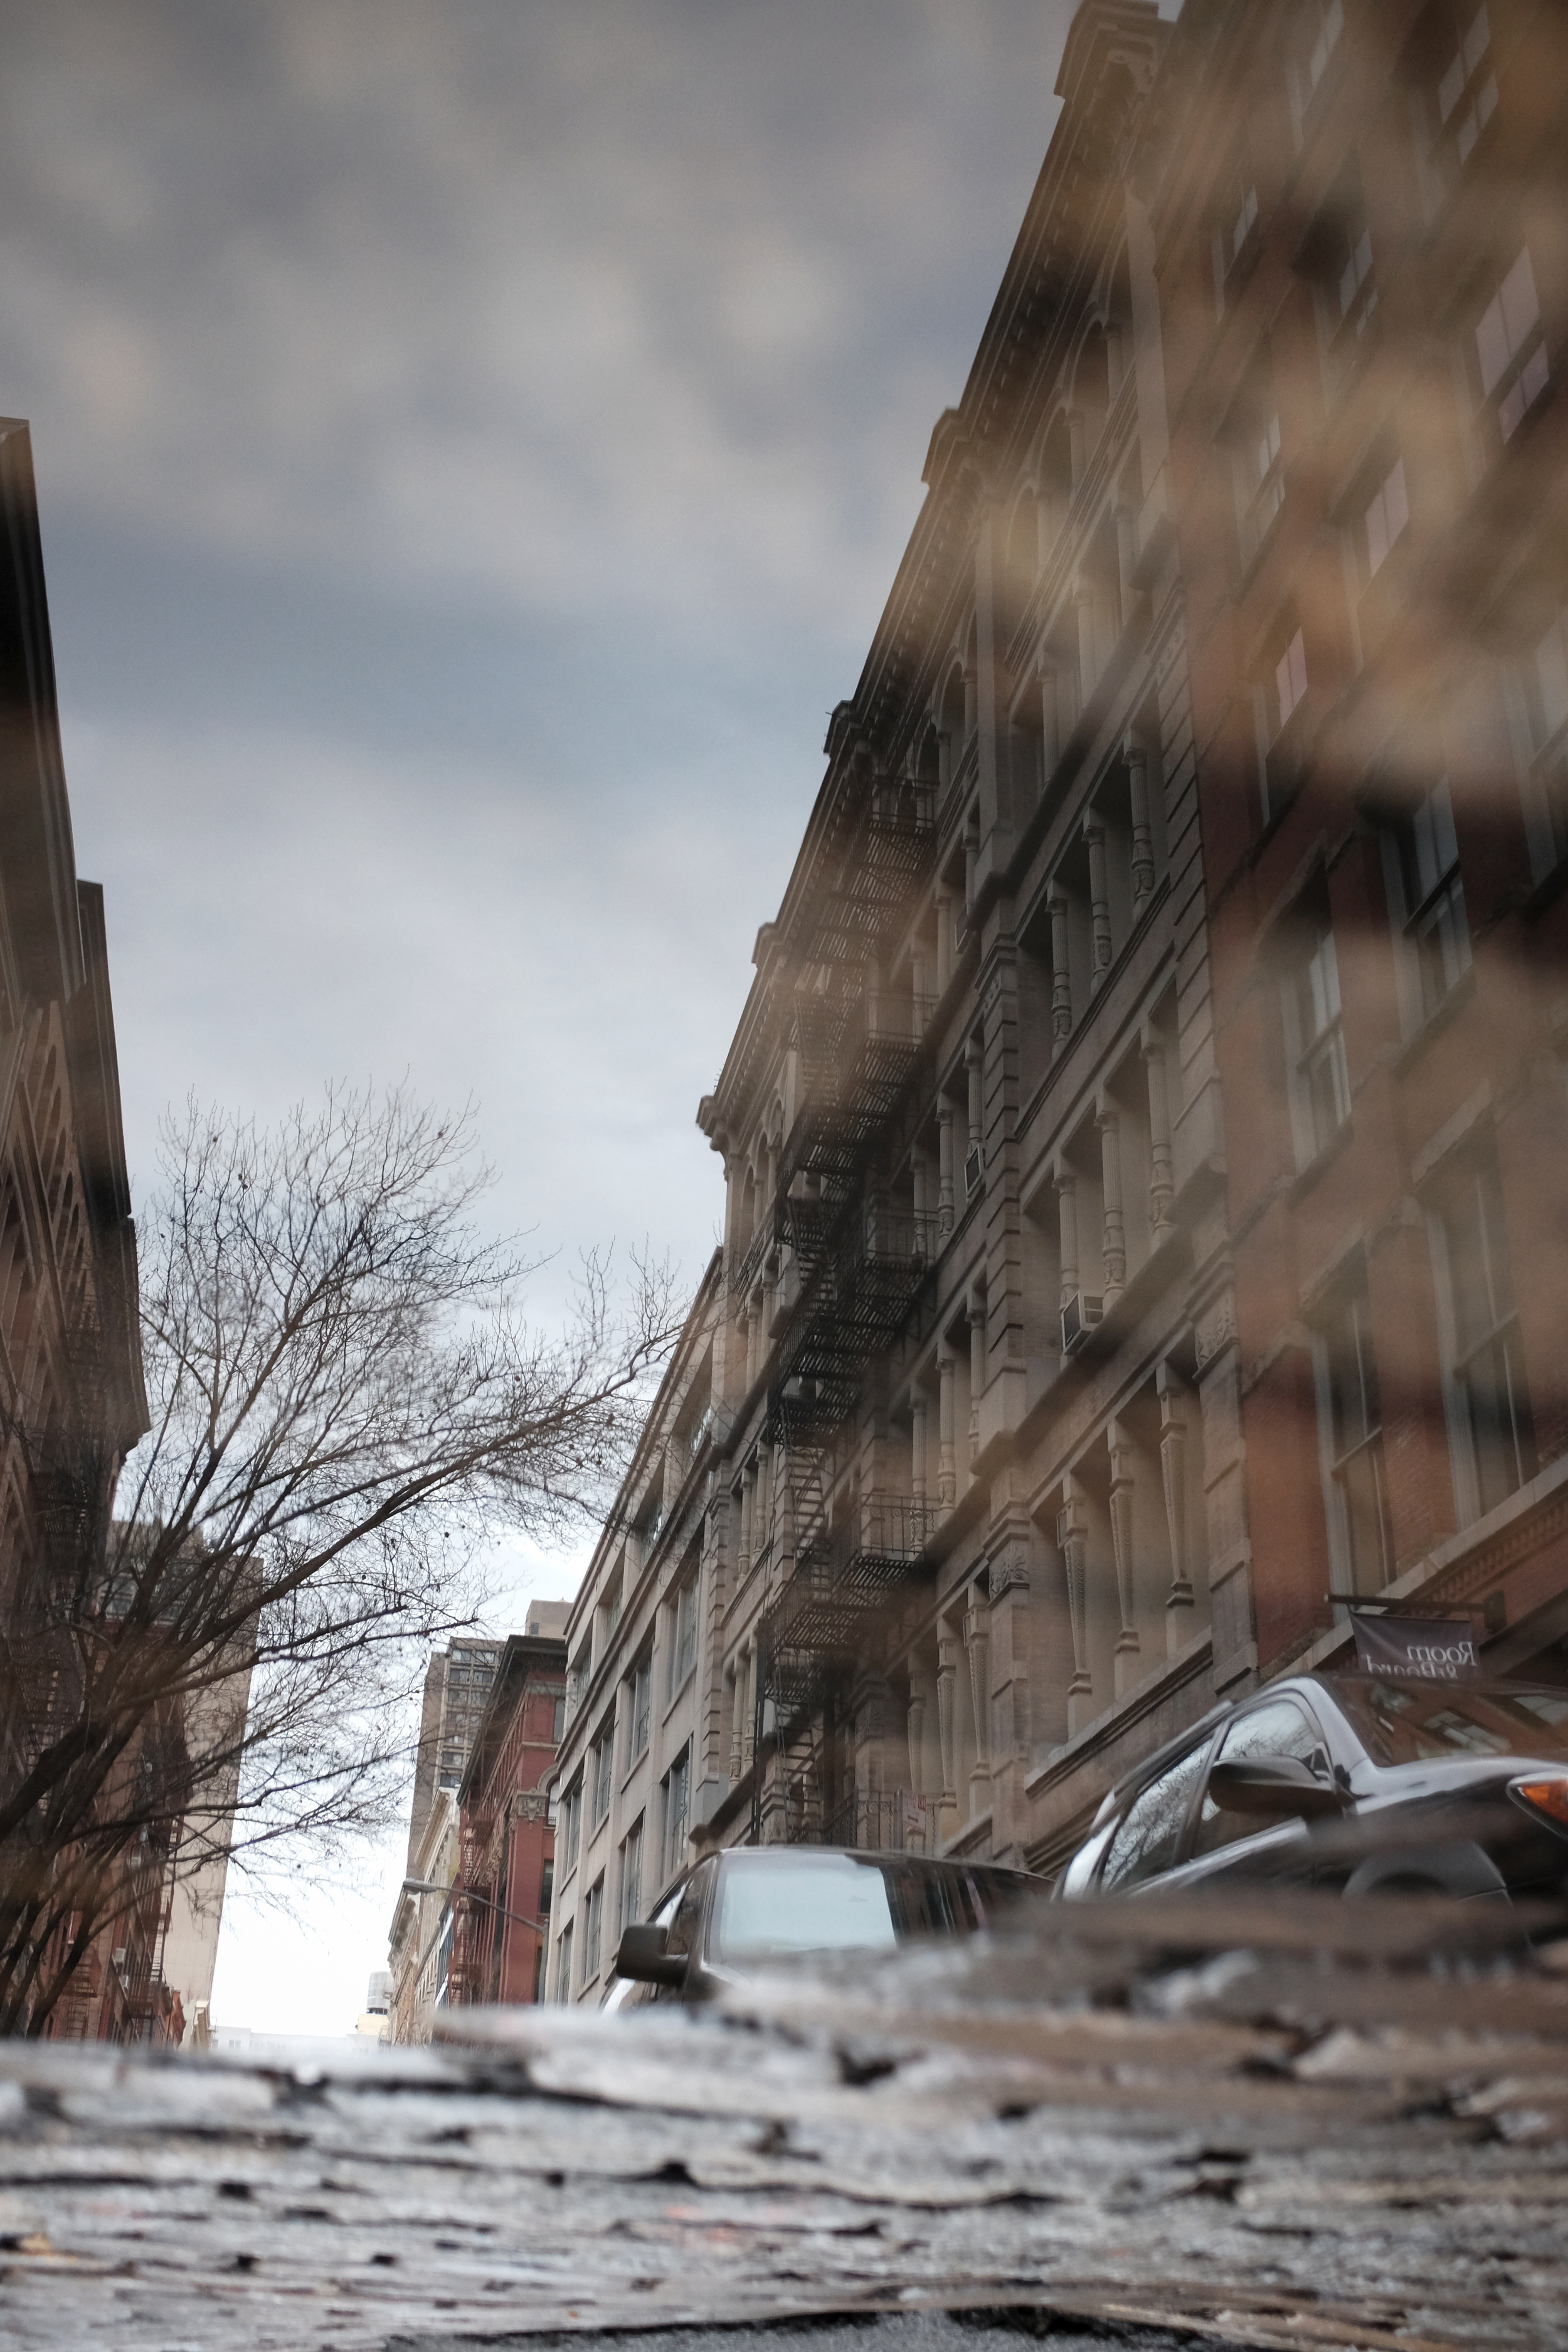 Cobblestone skies in SoHo. Just helps to make me see differently.... think differently.